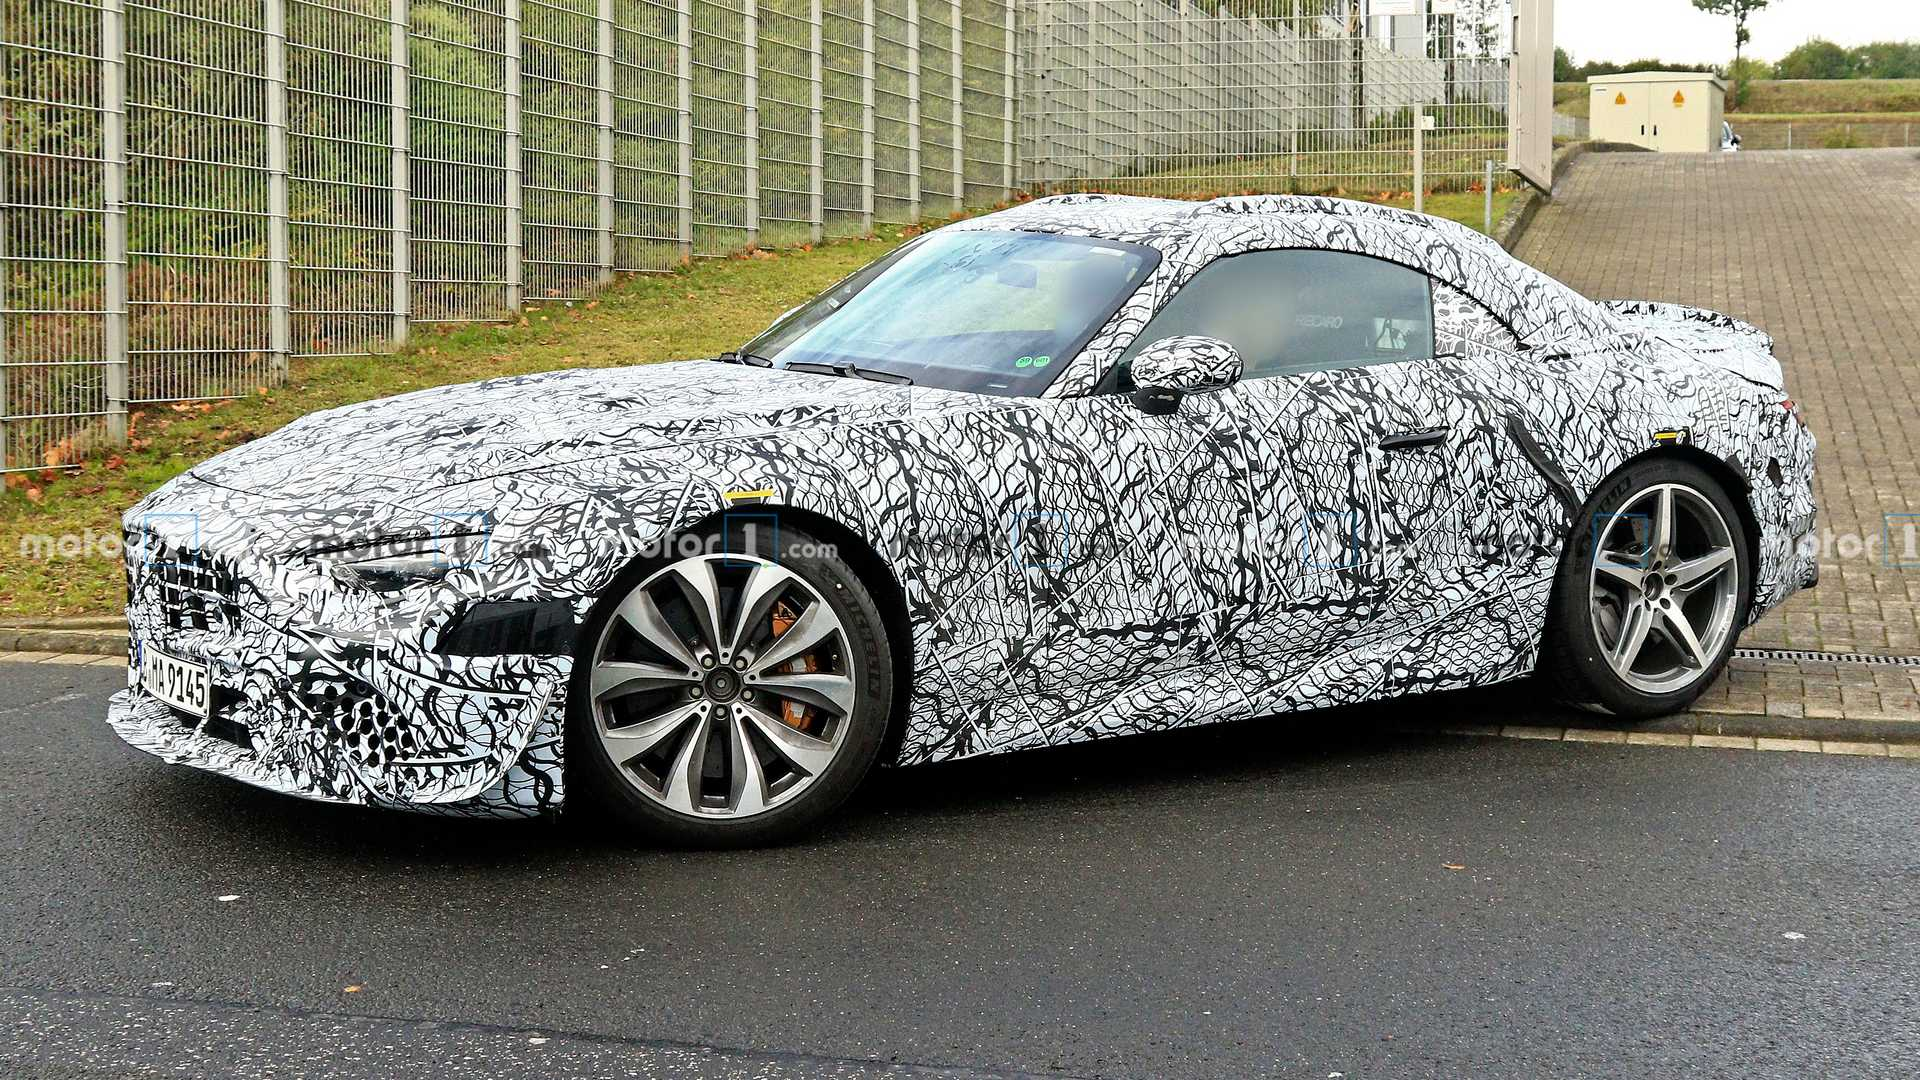 New Mercedes SL Will Look Gorgeous With New Soft Top According To Spy Pics